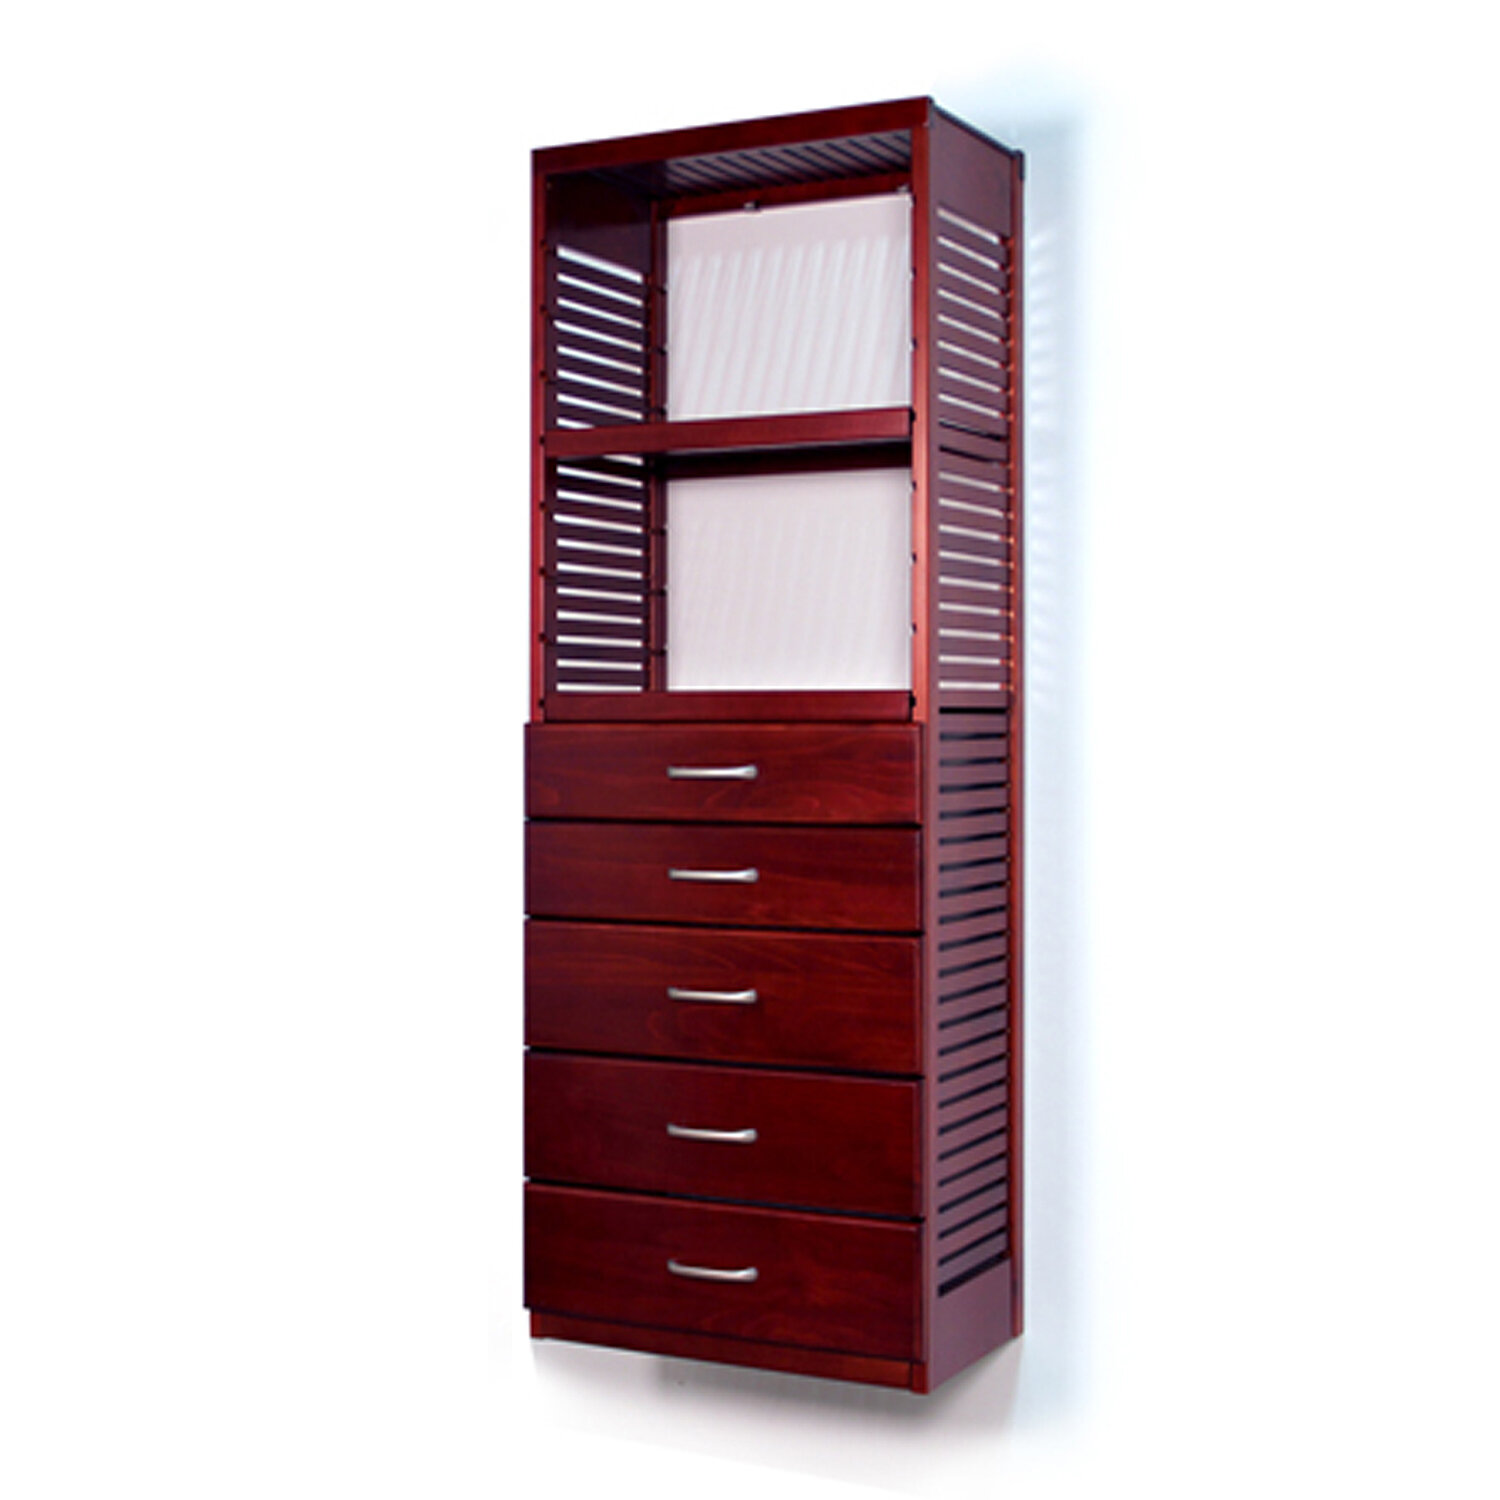 spacesolutionsweblog with walkin closets category master storage archives toronto shoe shelves shaker closet space tower solutions drawers